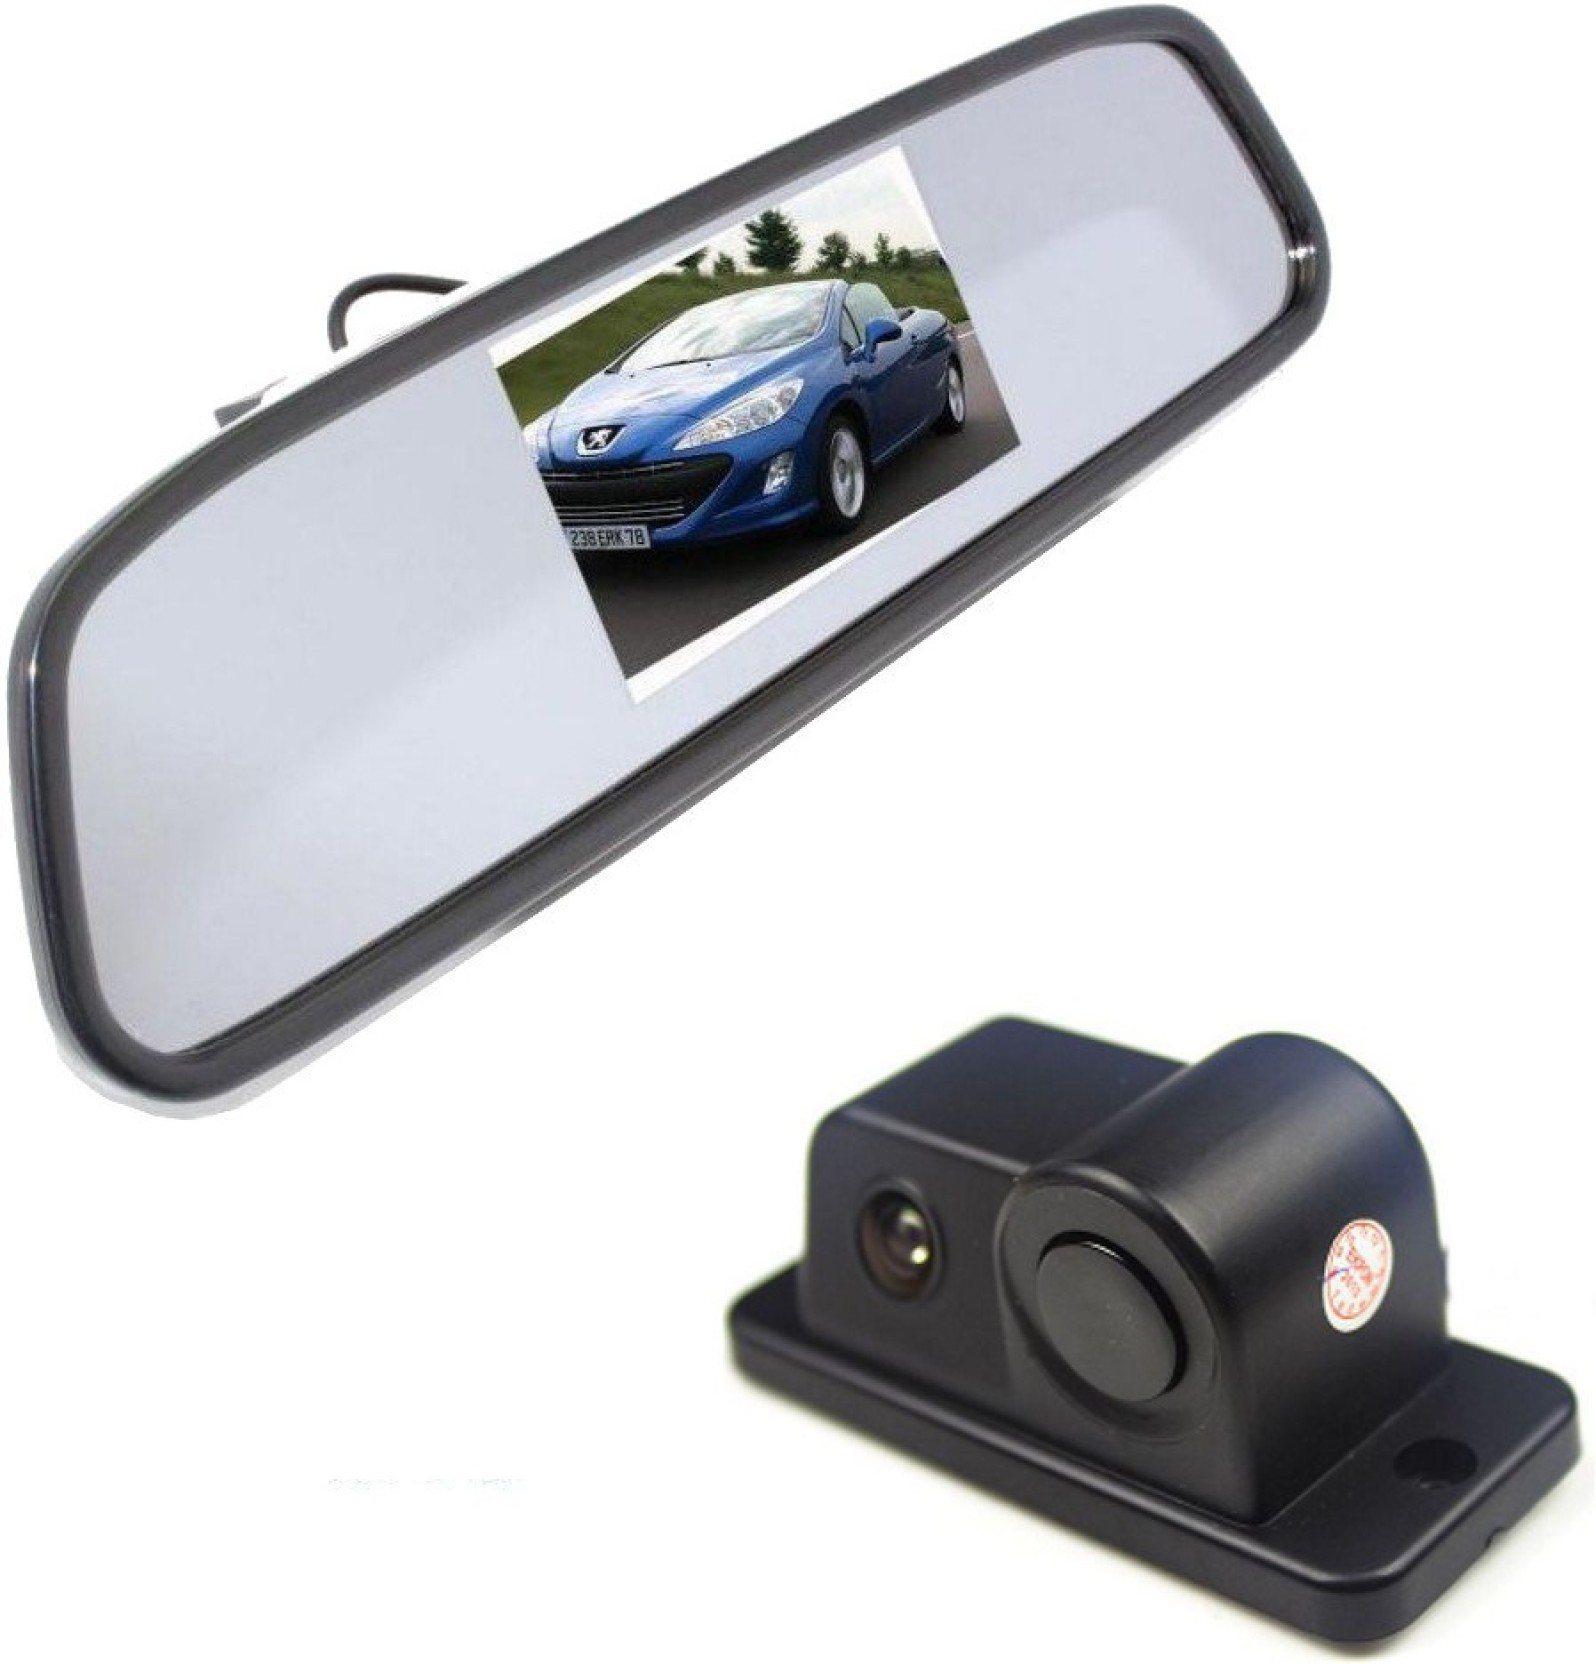 Alria 2 In1 Car Parking Reversing Radar Rear Camera With 43 Reverse Sensor Circuit For Security System Add To Cart